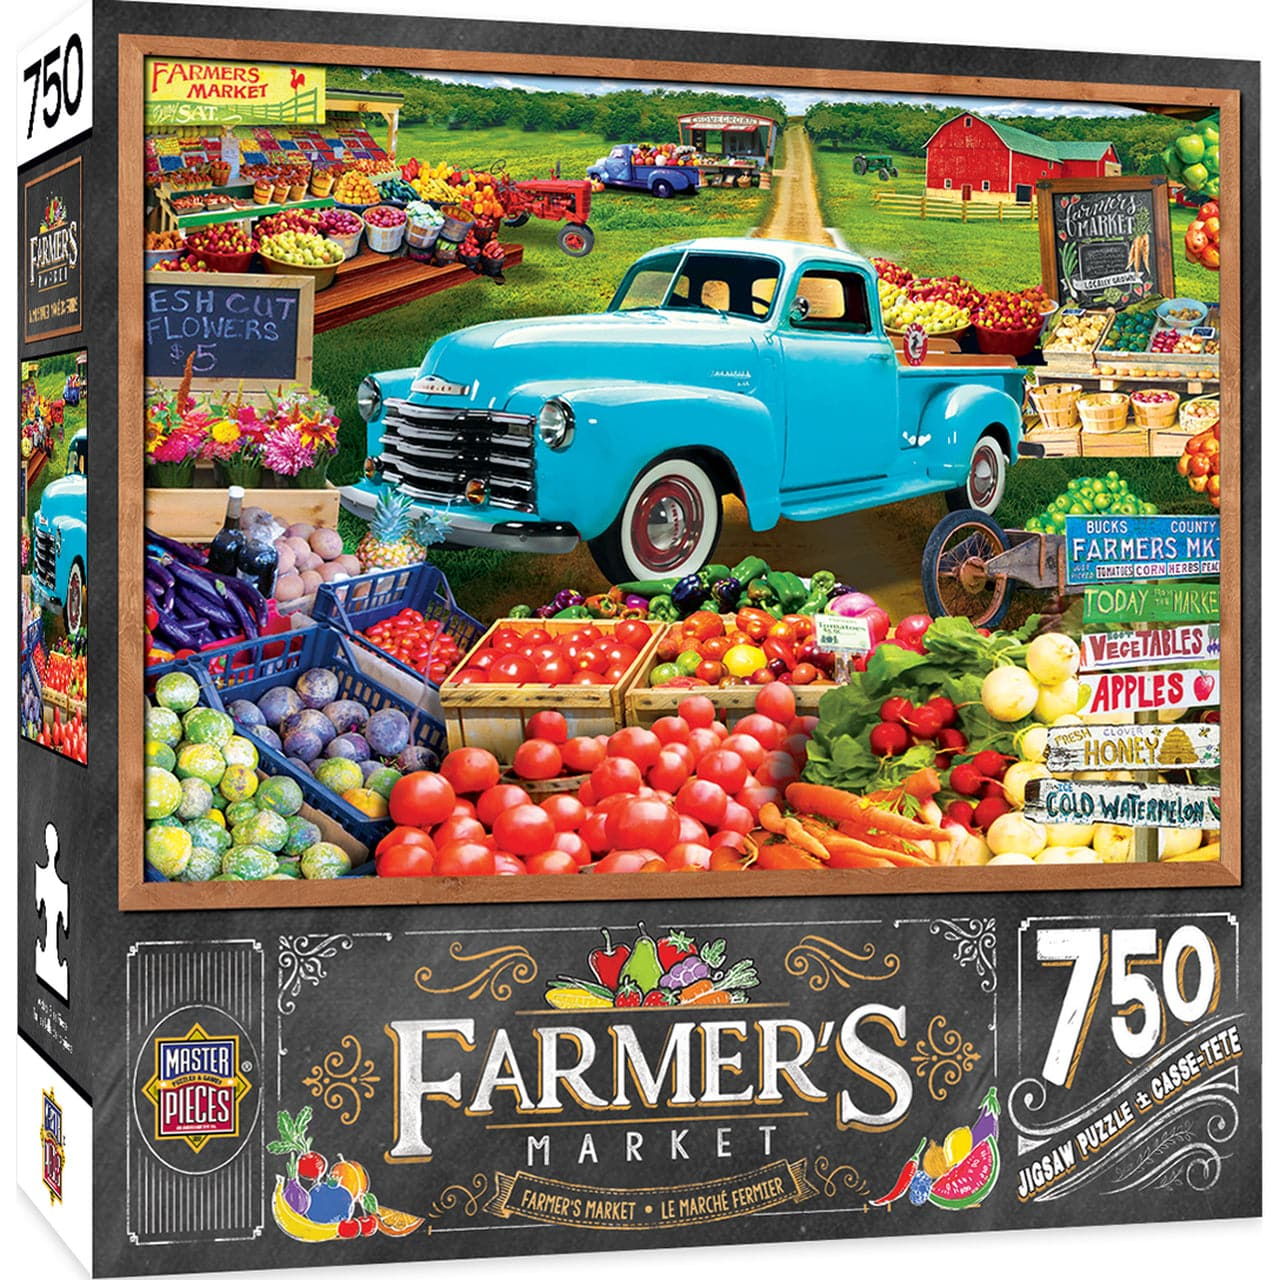 Farmer's Market - Locally Grown - 750 Piece Puzzle